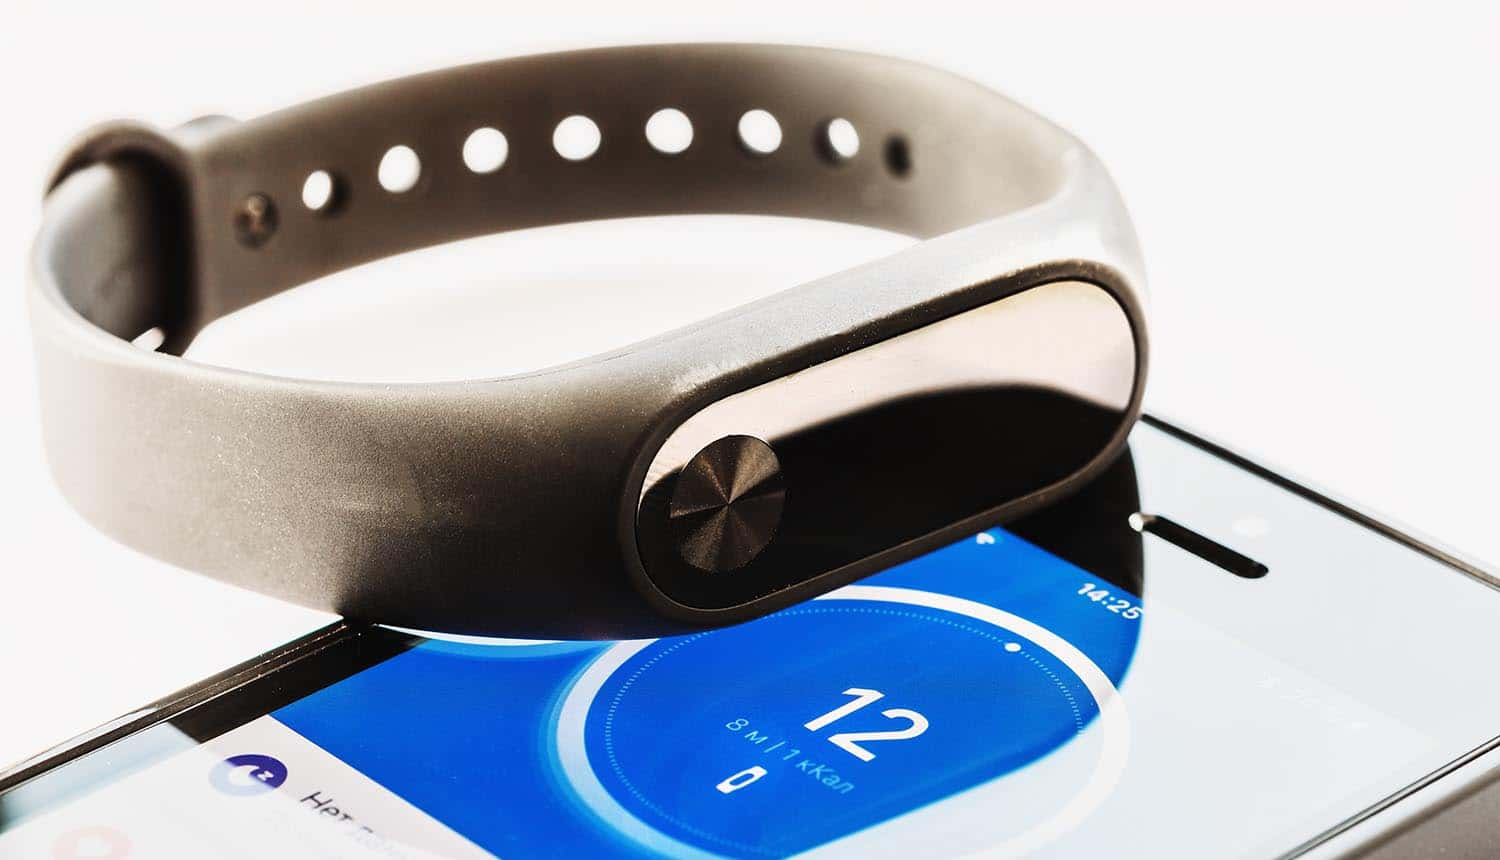 Fitness tracker on mobile phone showing health data privacy with Google acquisition of Fitbit